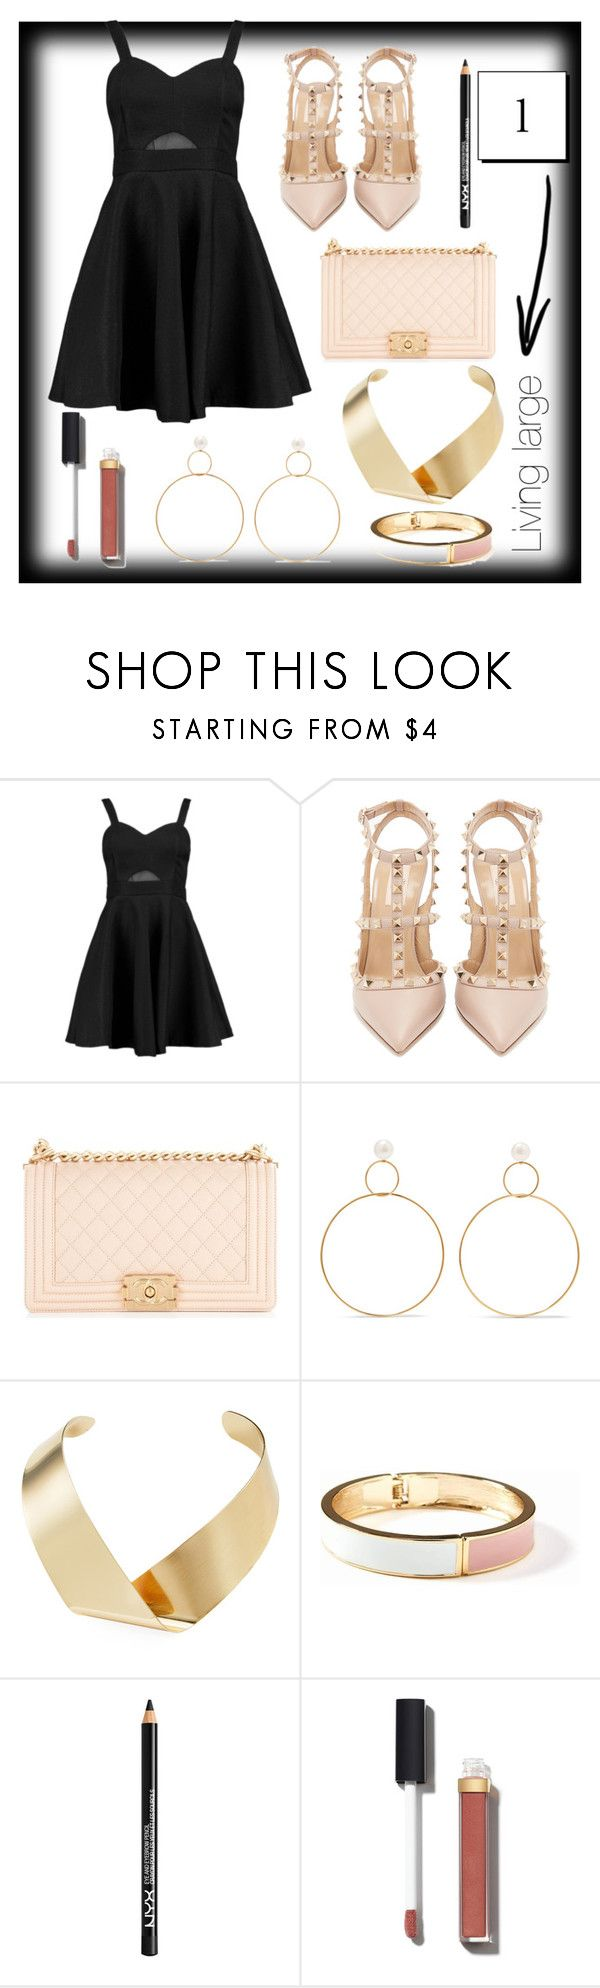 """""""Girl in the little black dress"""" by sassievanrobays ❤ liked on Polyvore featuring Boohoo, Valentino, Chanel, Natasha Schweitzer, Kenneth Jay Lane, Old Navy and NYX"""